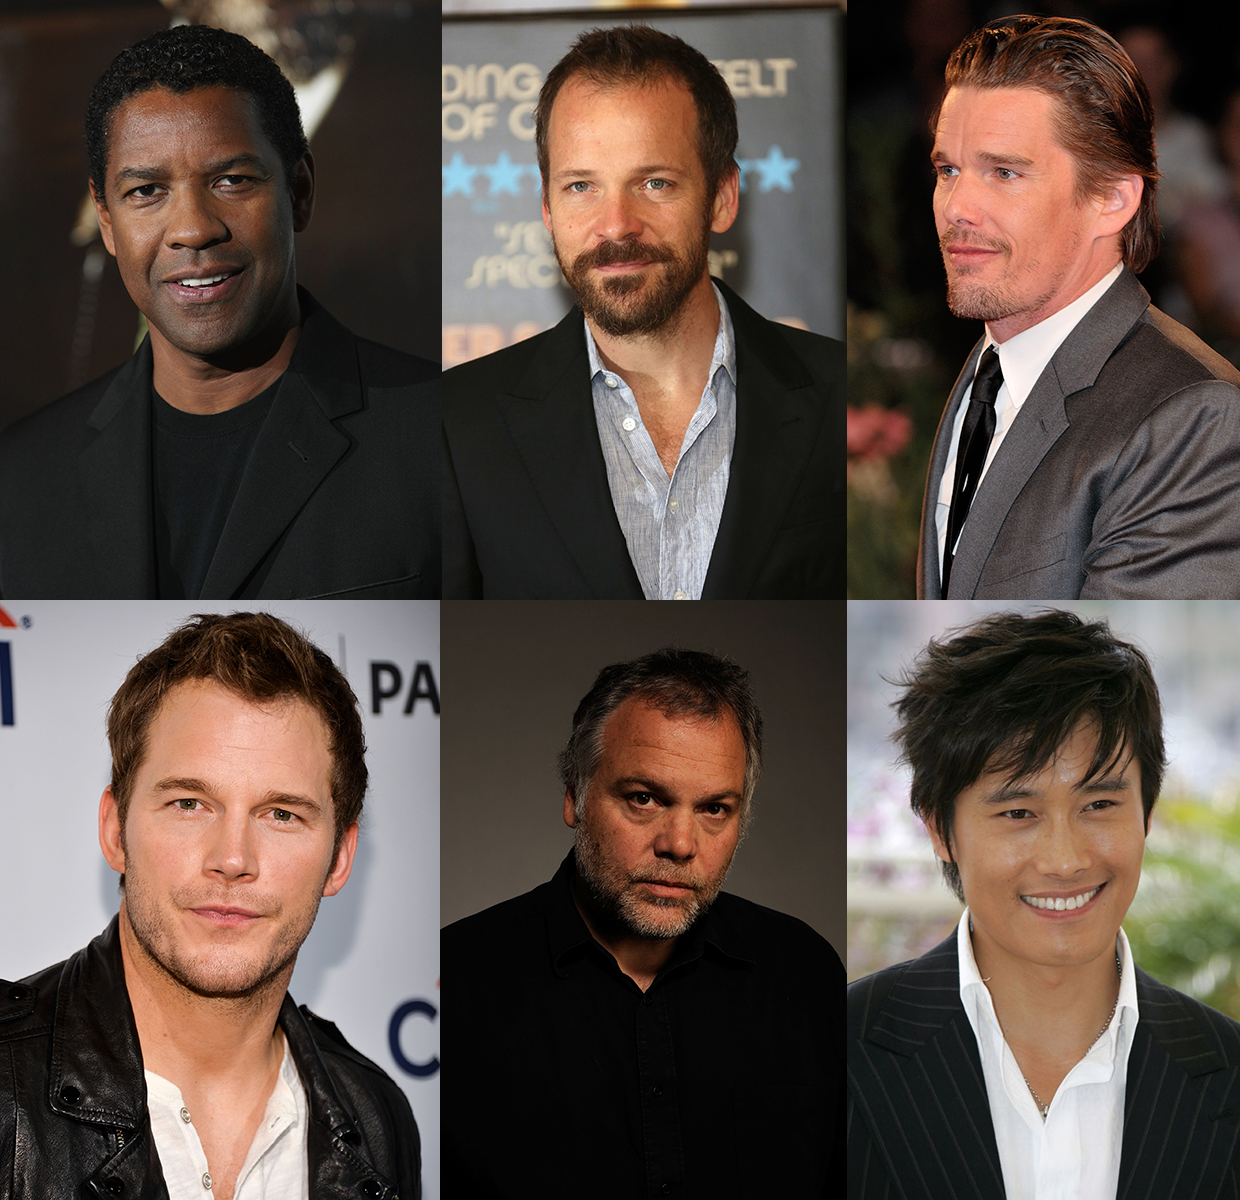 Among the A-list cast of  The Magnificent Seven  are Denzel Washington,Peter Sarsgaard, Ethan Hawke, Chris Pratt,Vincent D'Onofrio, and Byung-hun Lee - images via Google.